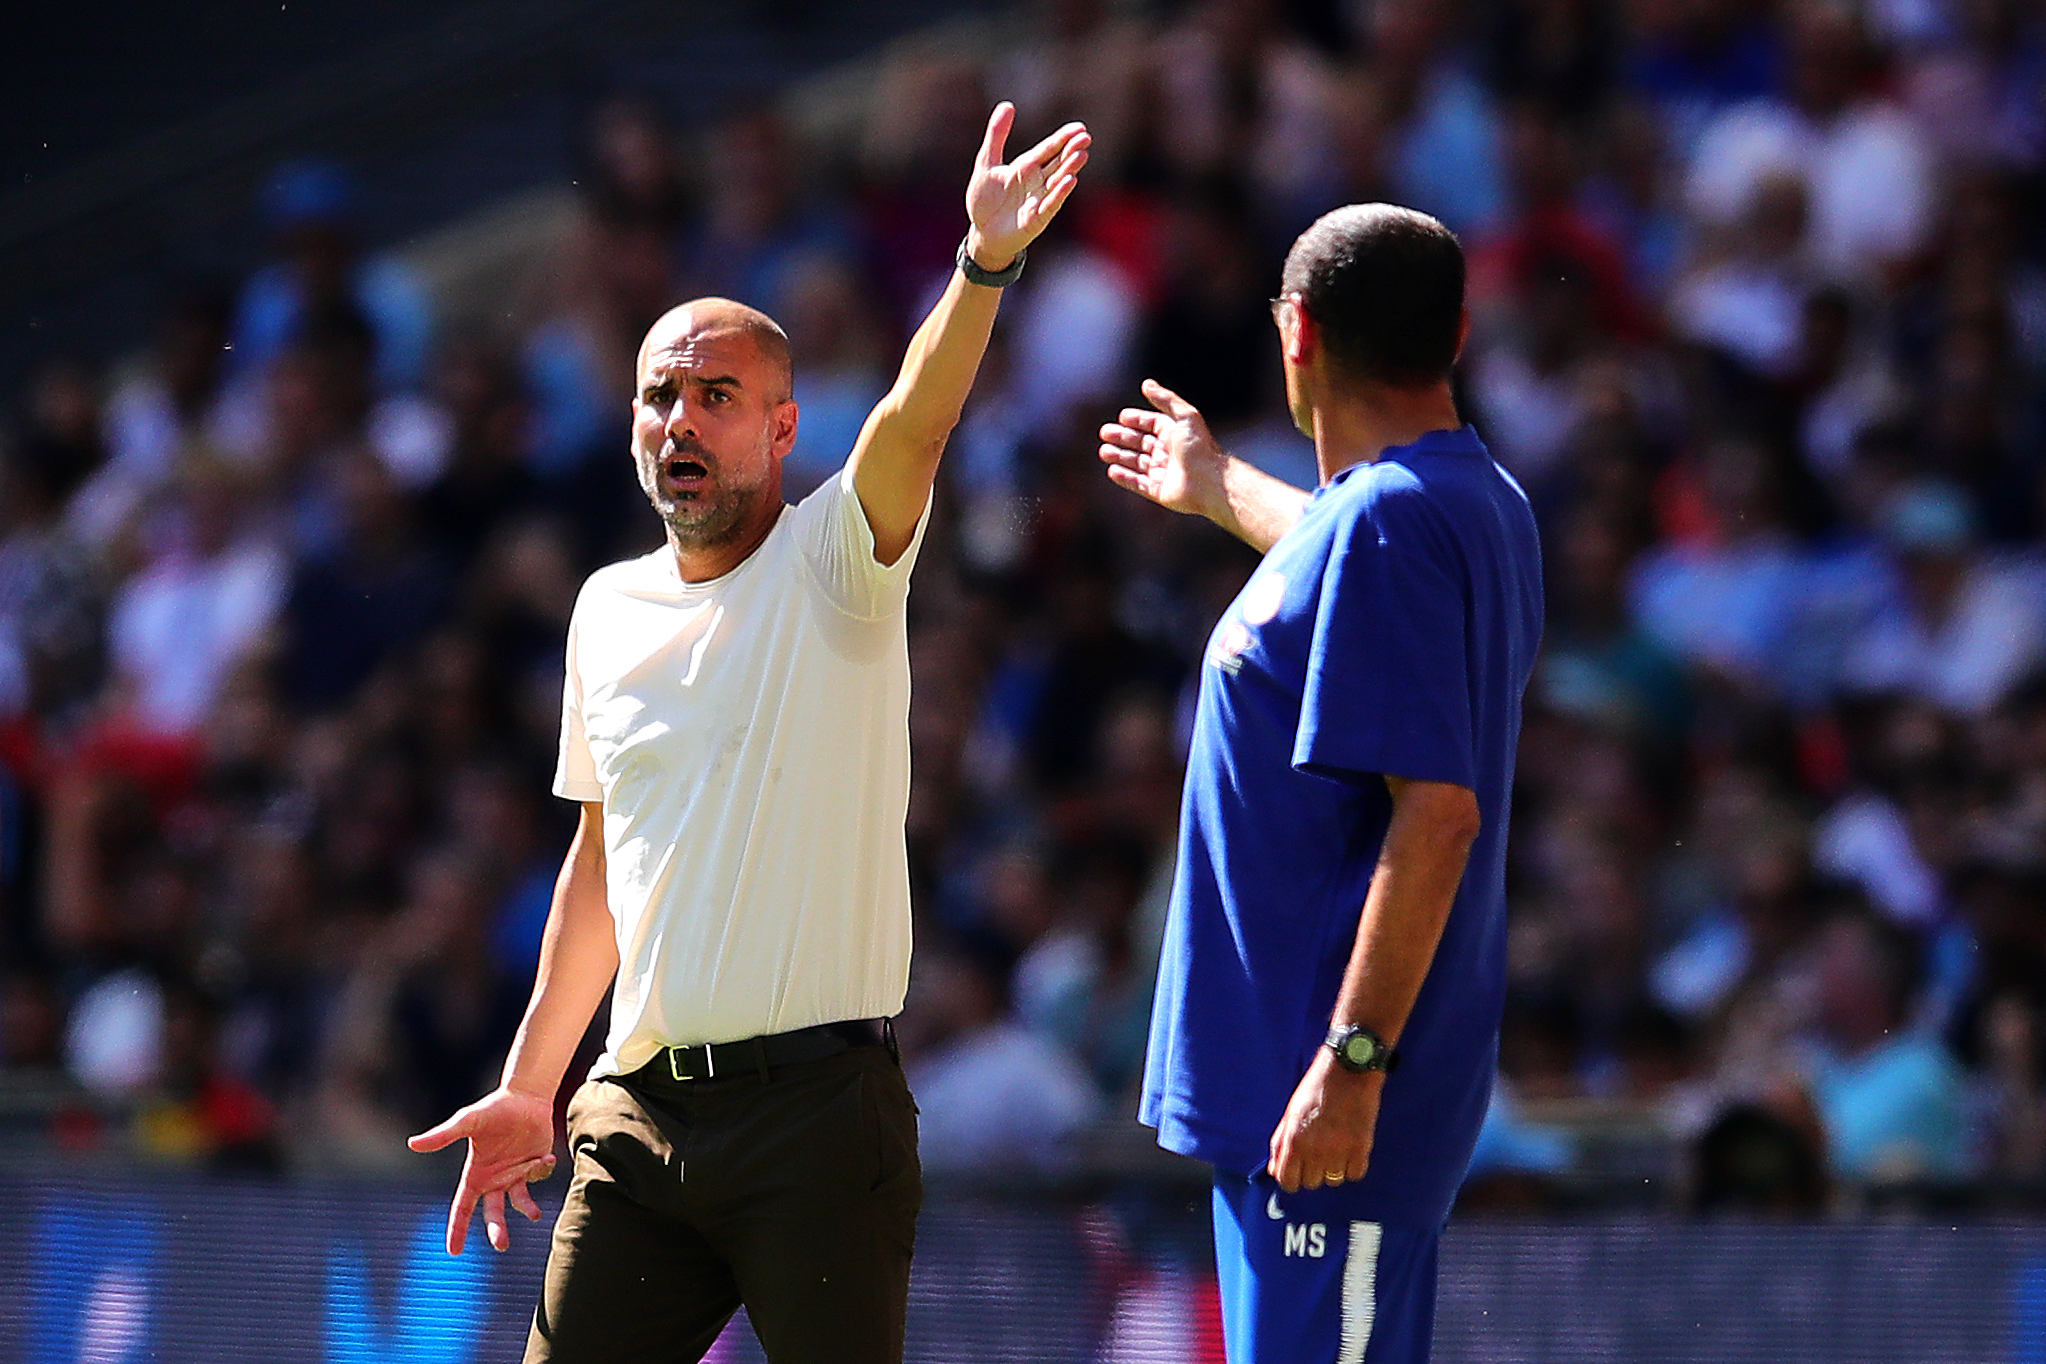 Maurizio Sarri backs Manchester City or Juventus to win Champions League